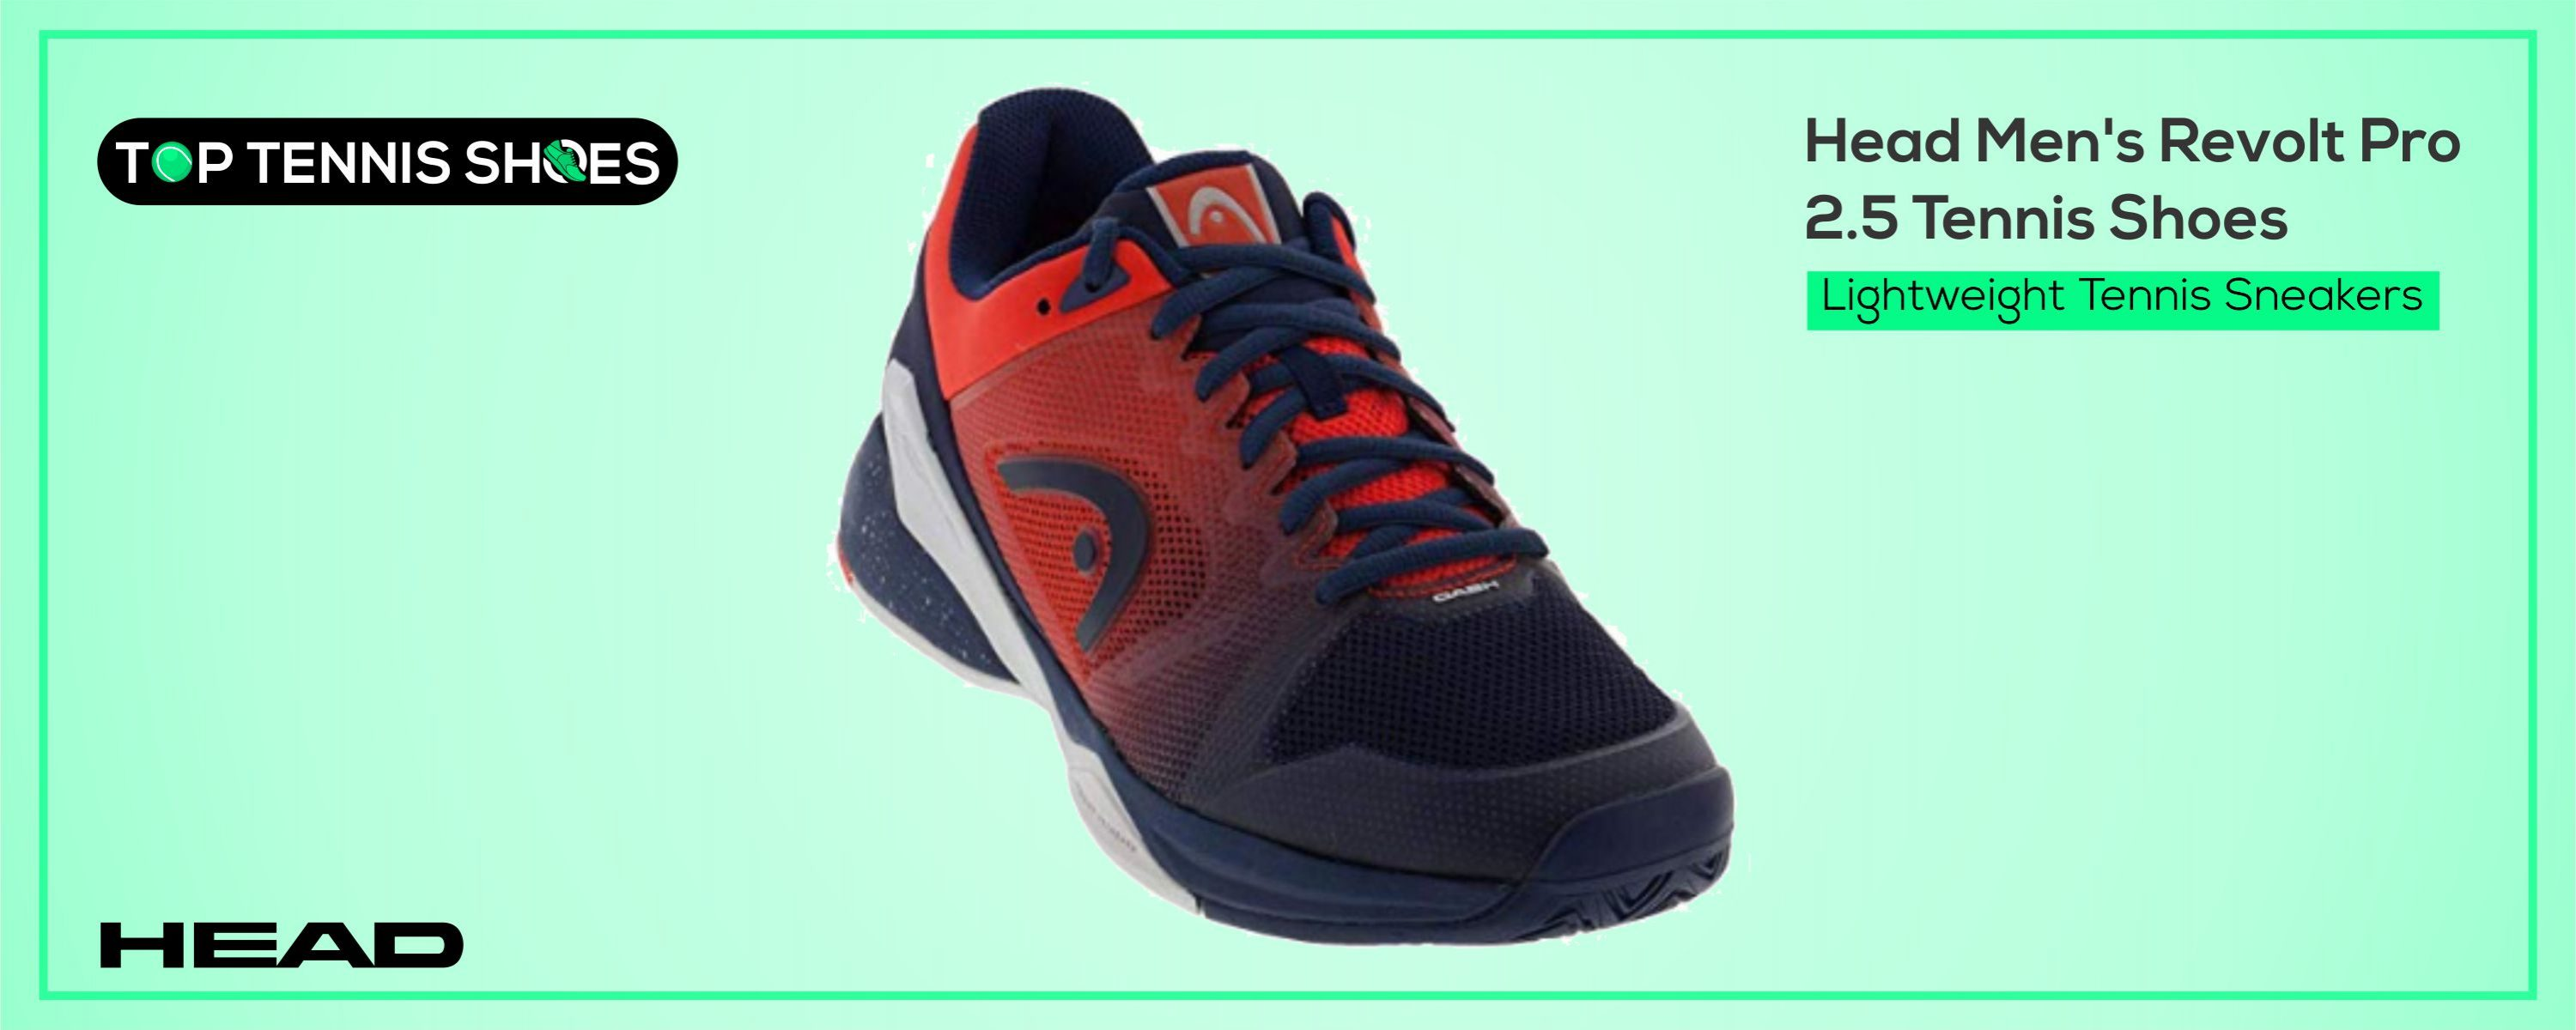 Lightweight Tennis Sneakers